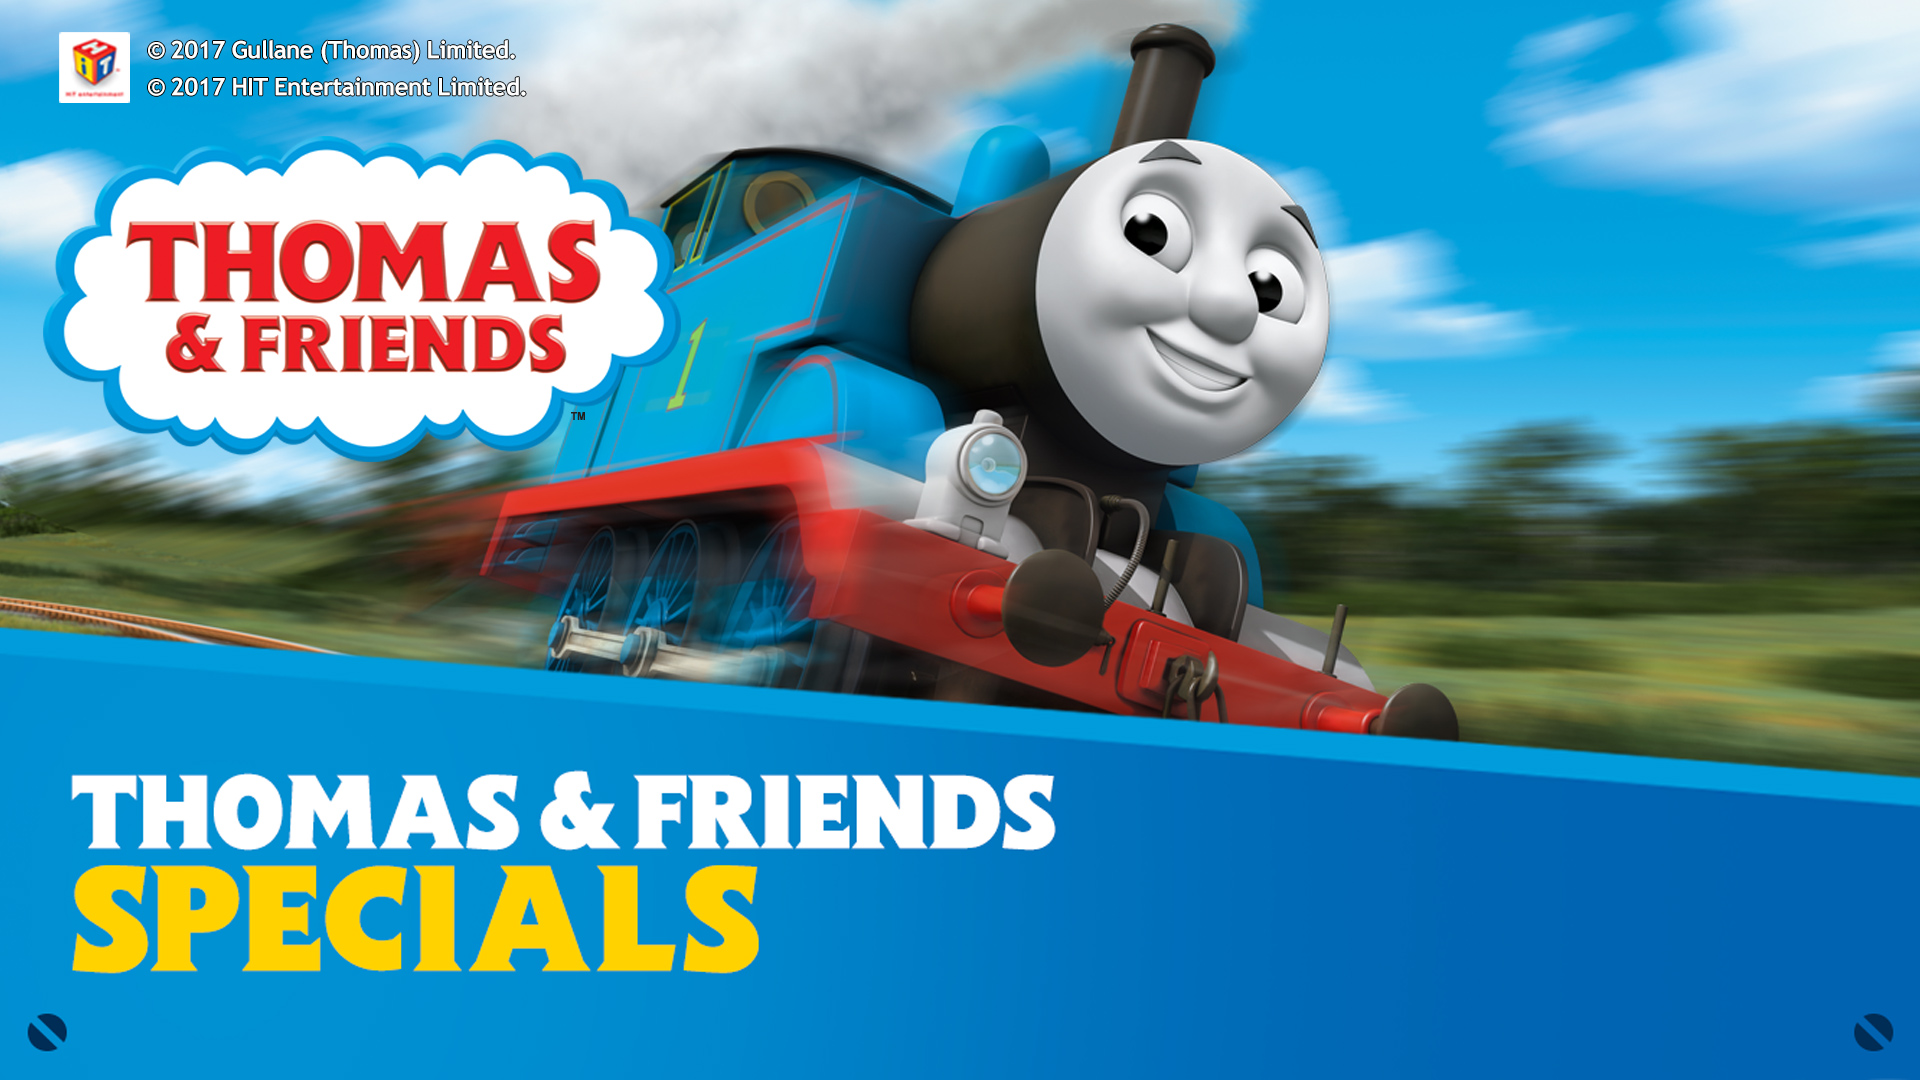 THOMAS & FRIENDS SPECIAL